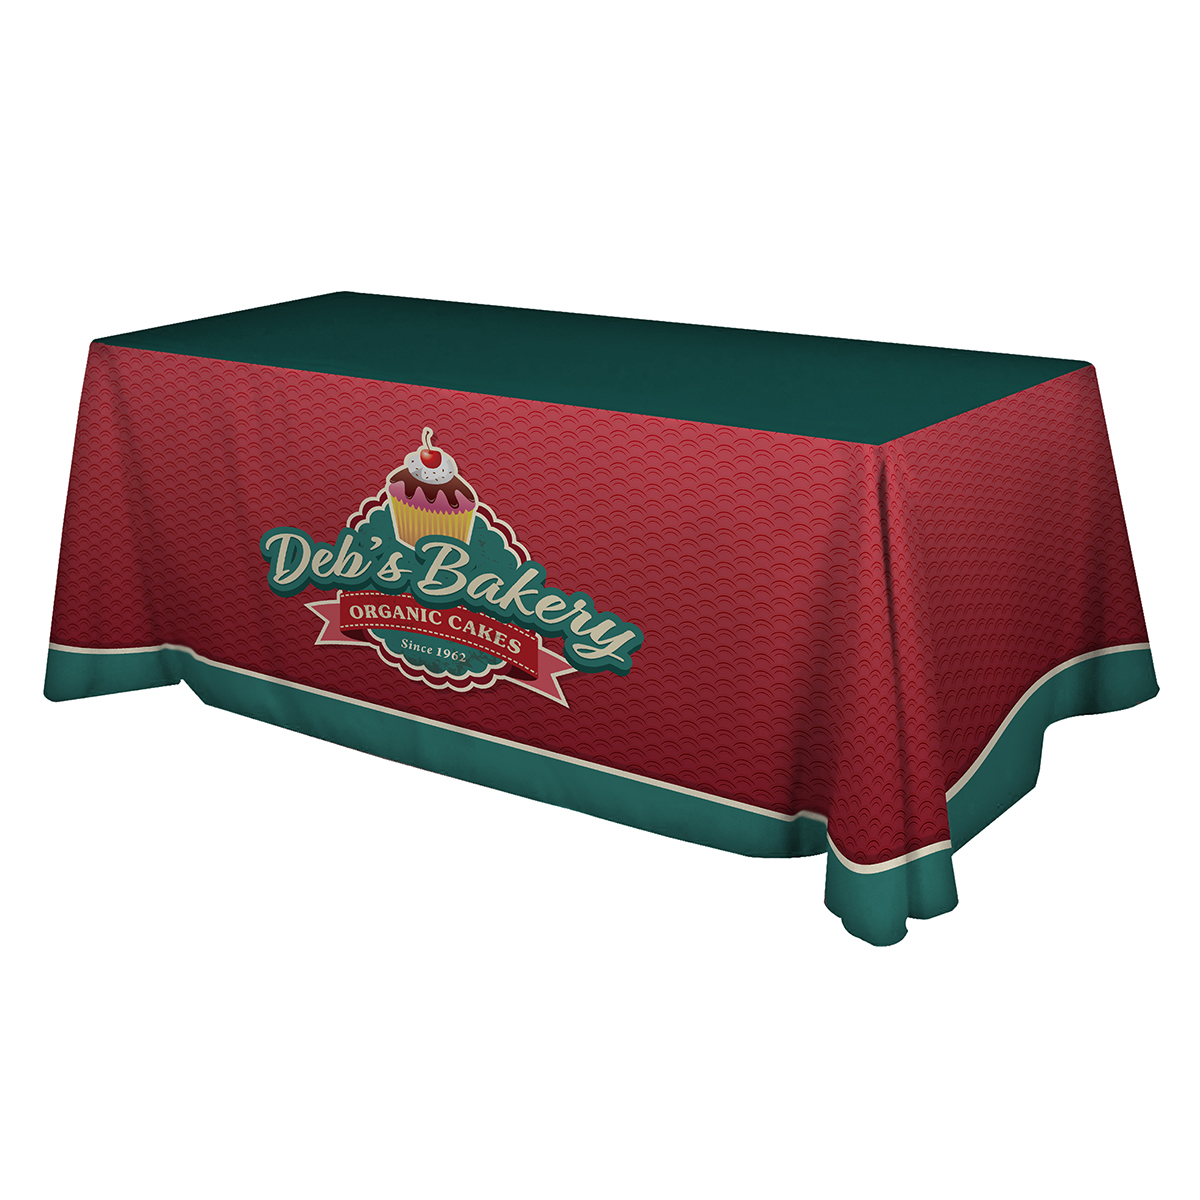 Premium 6ft Table Throw - Full Color - 3 Sided